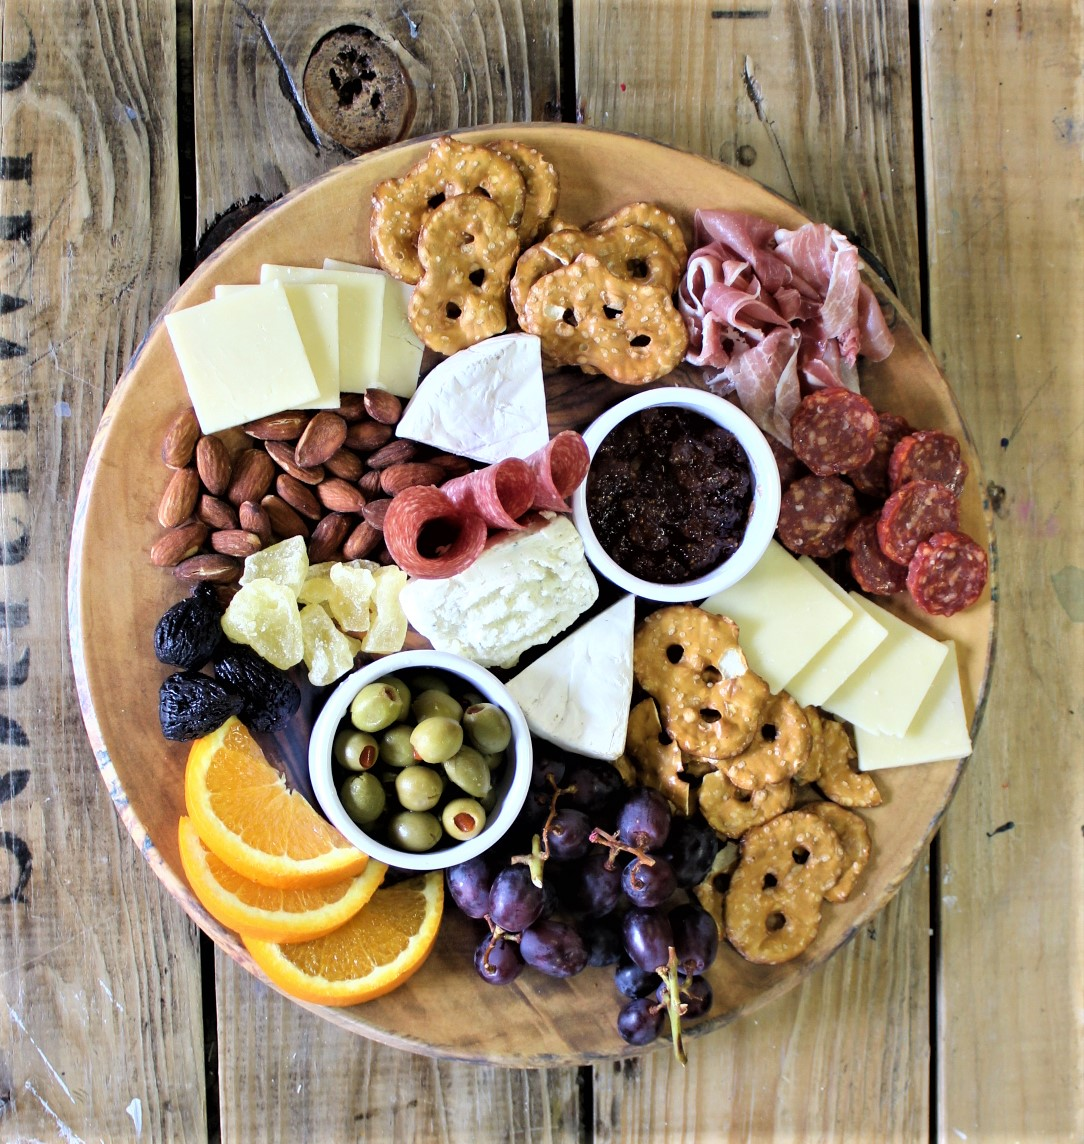 The Davinci Cheese board